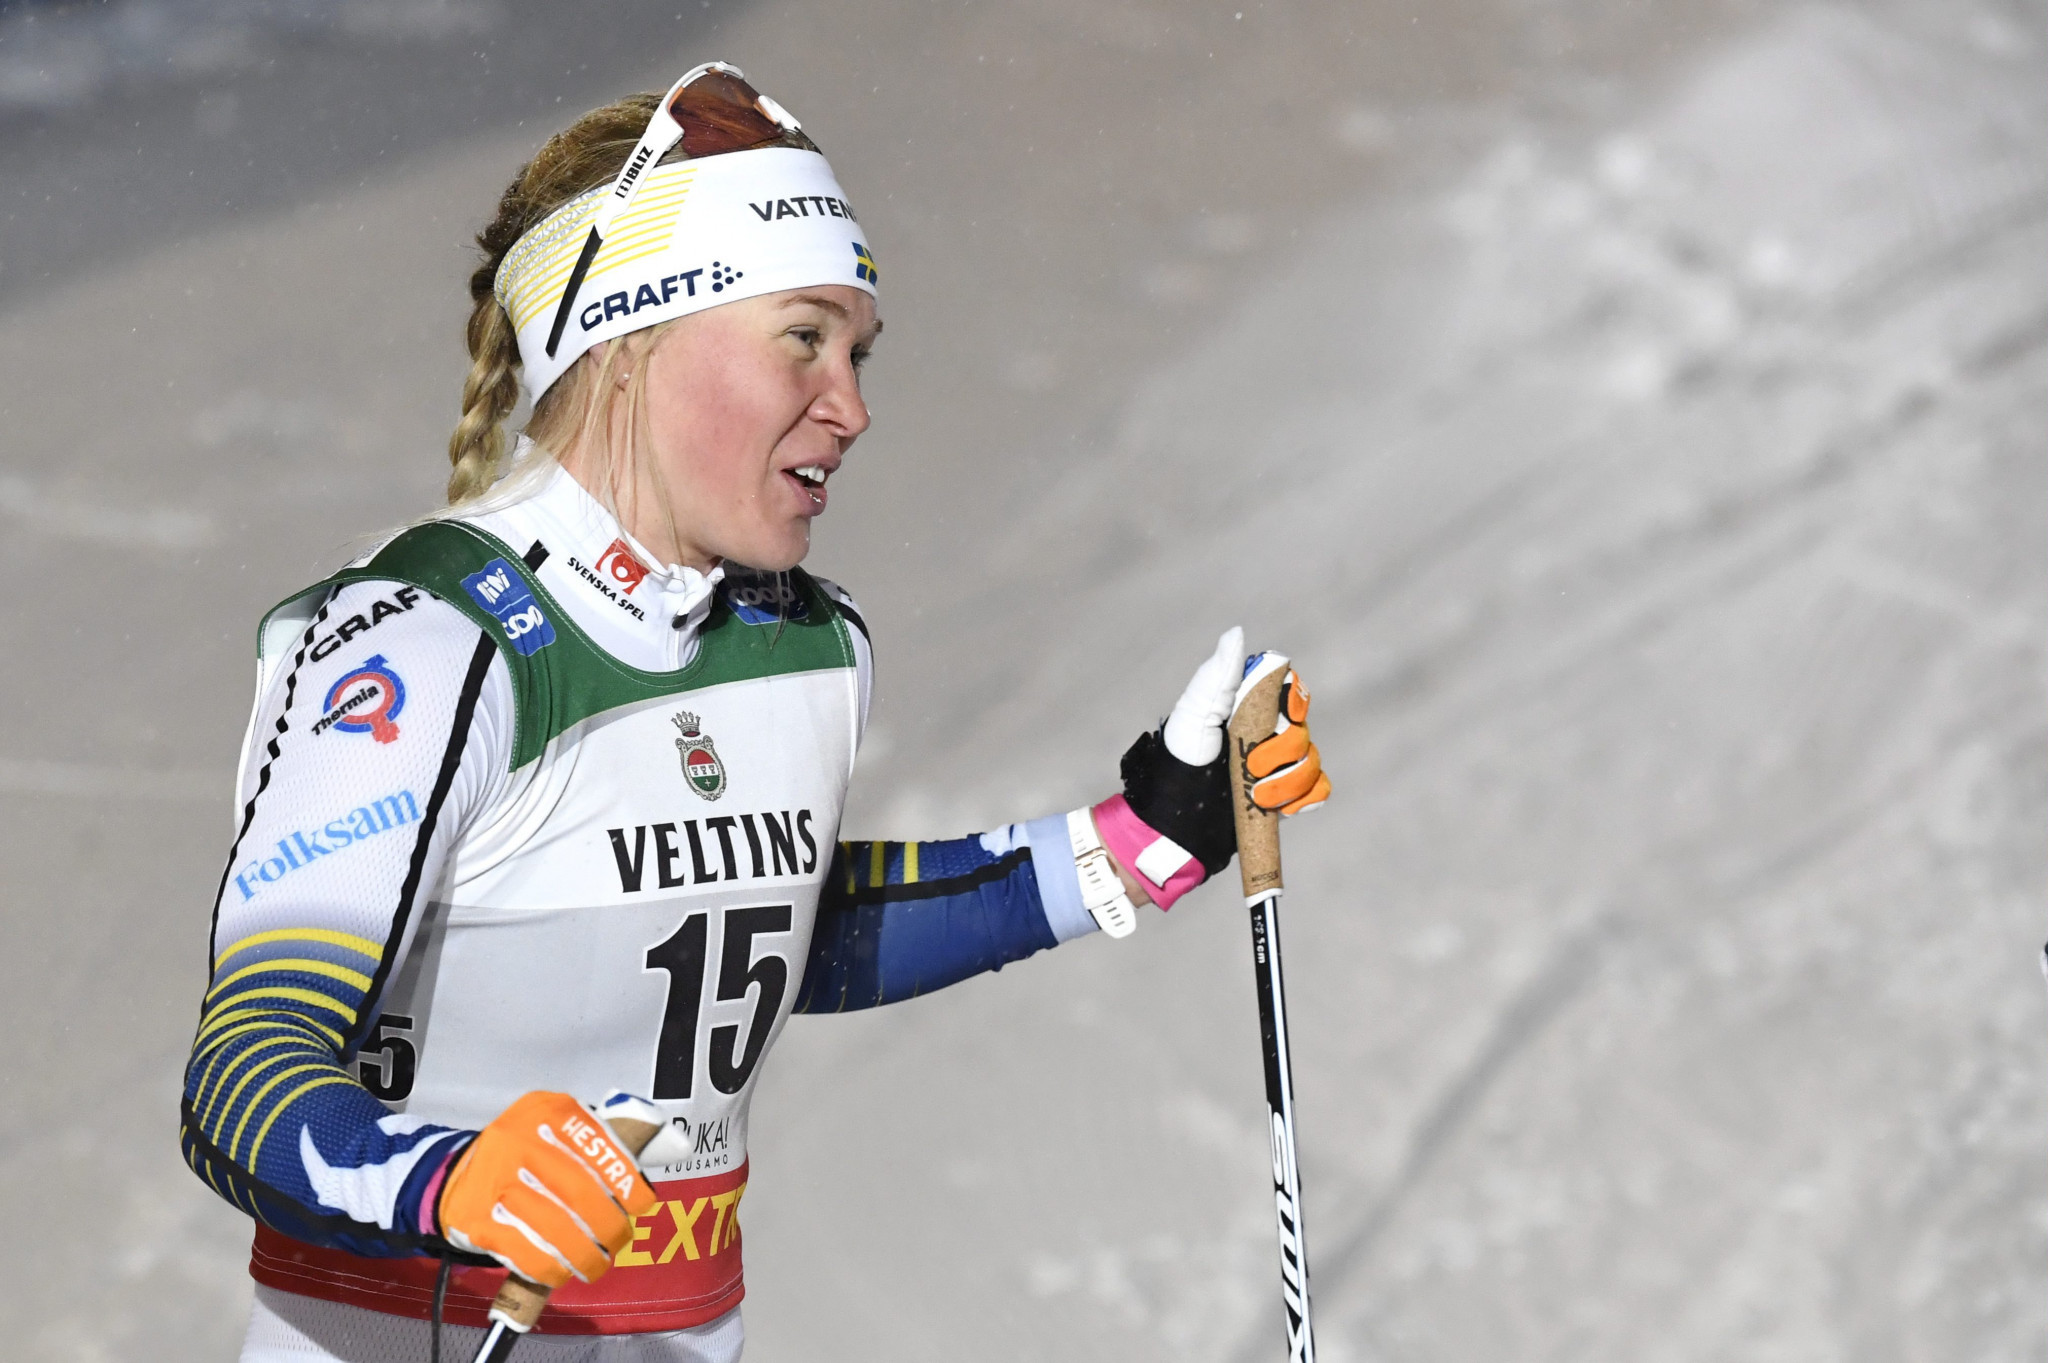 Sweden's Sundling misses out on FIS Cross-Country World Cup event in Dresden with cold